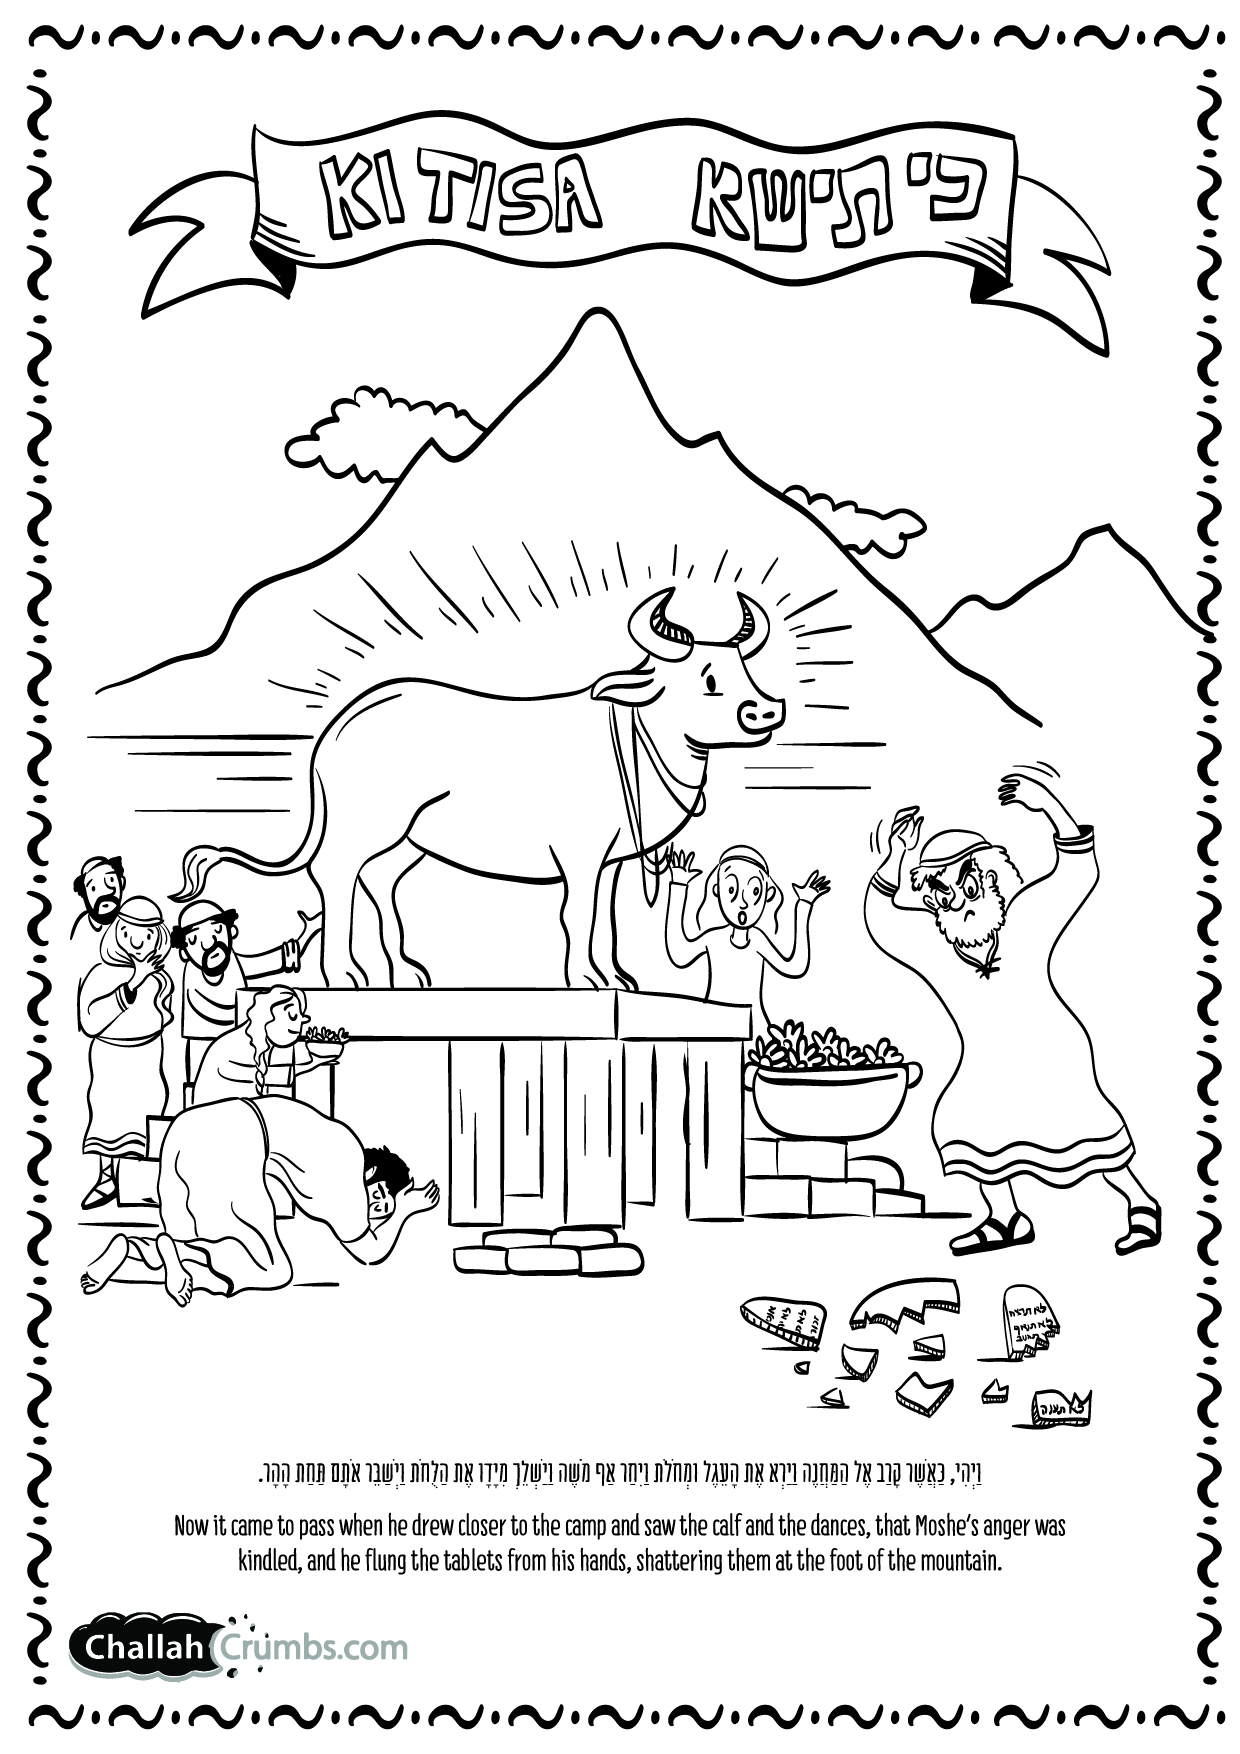 beshalach coloring pages - photo#28